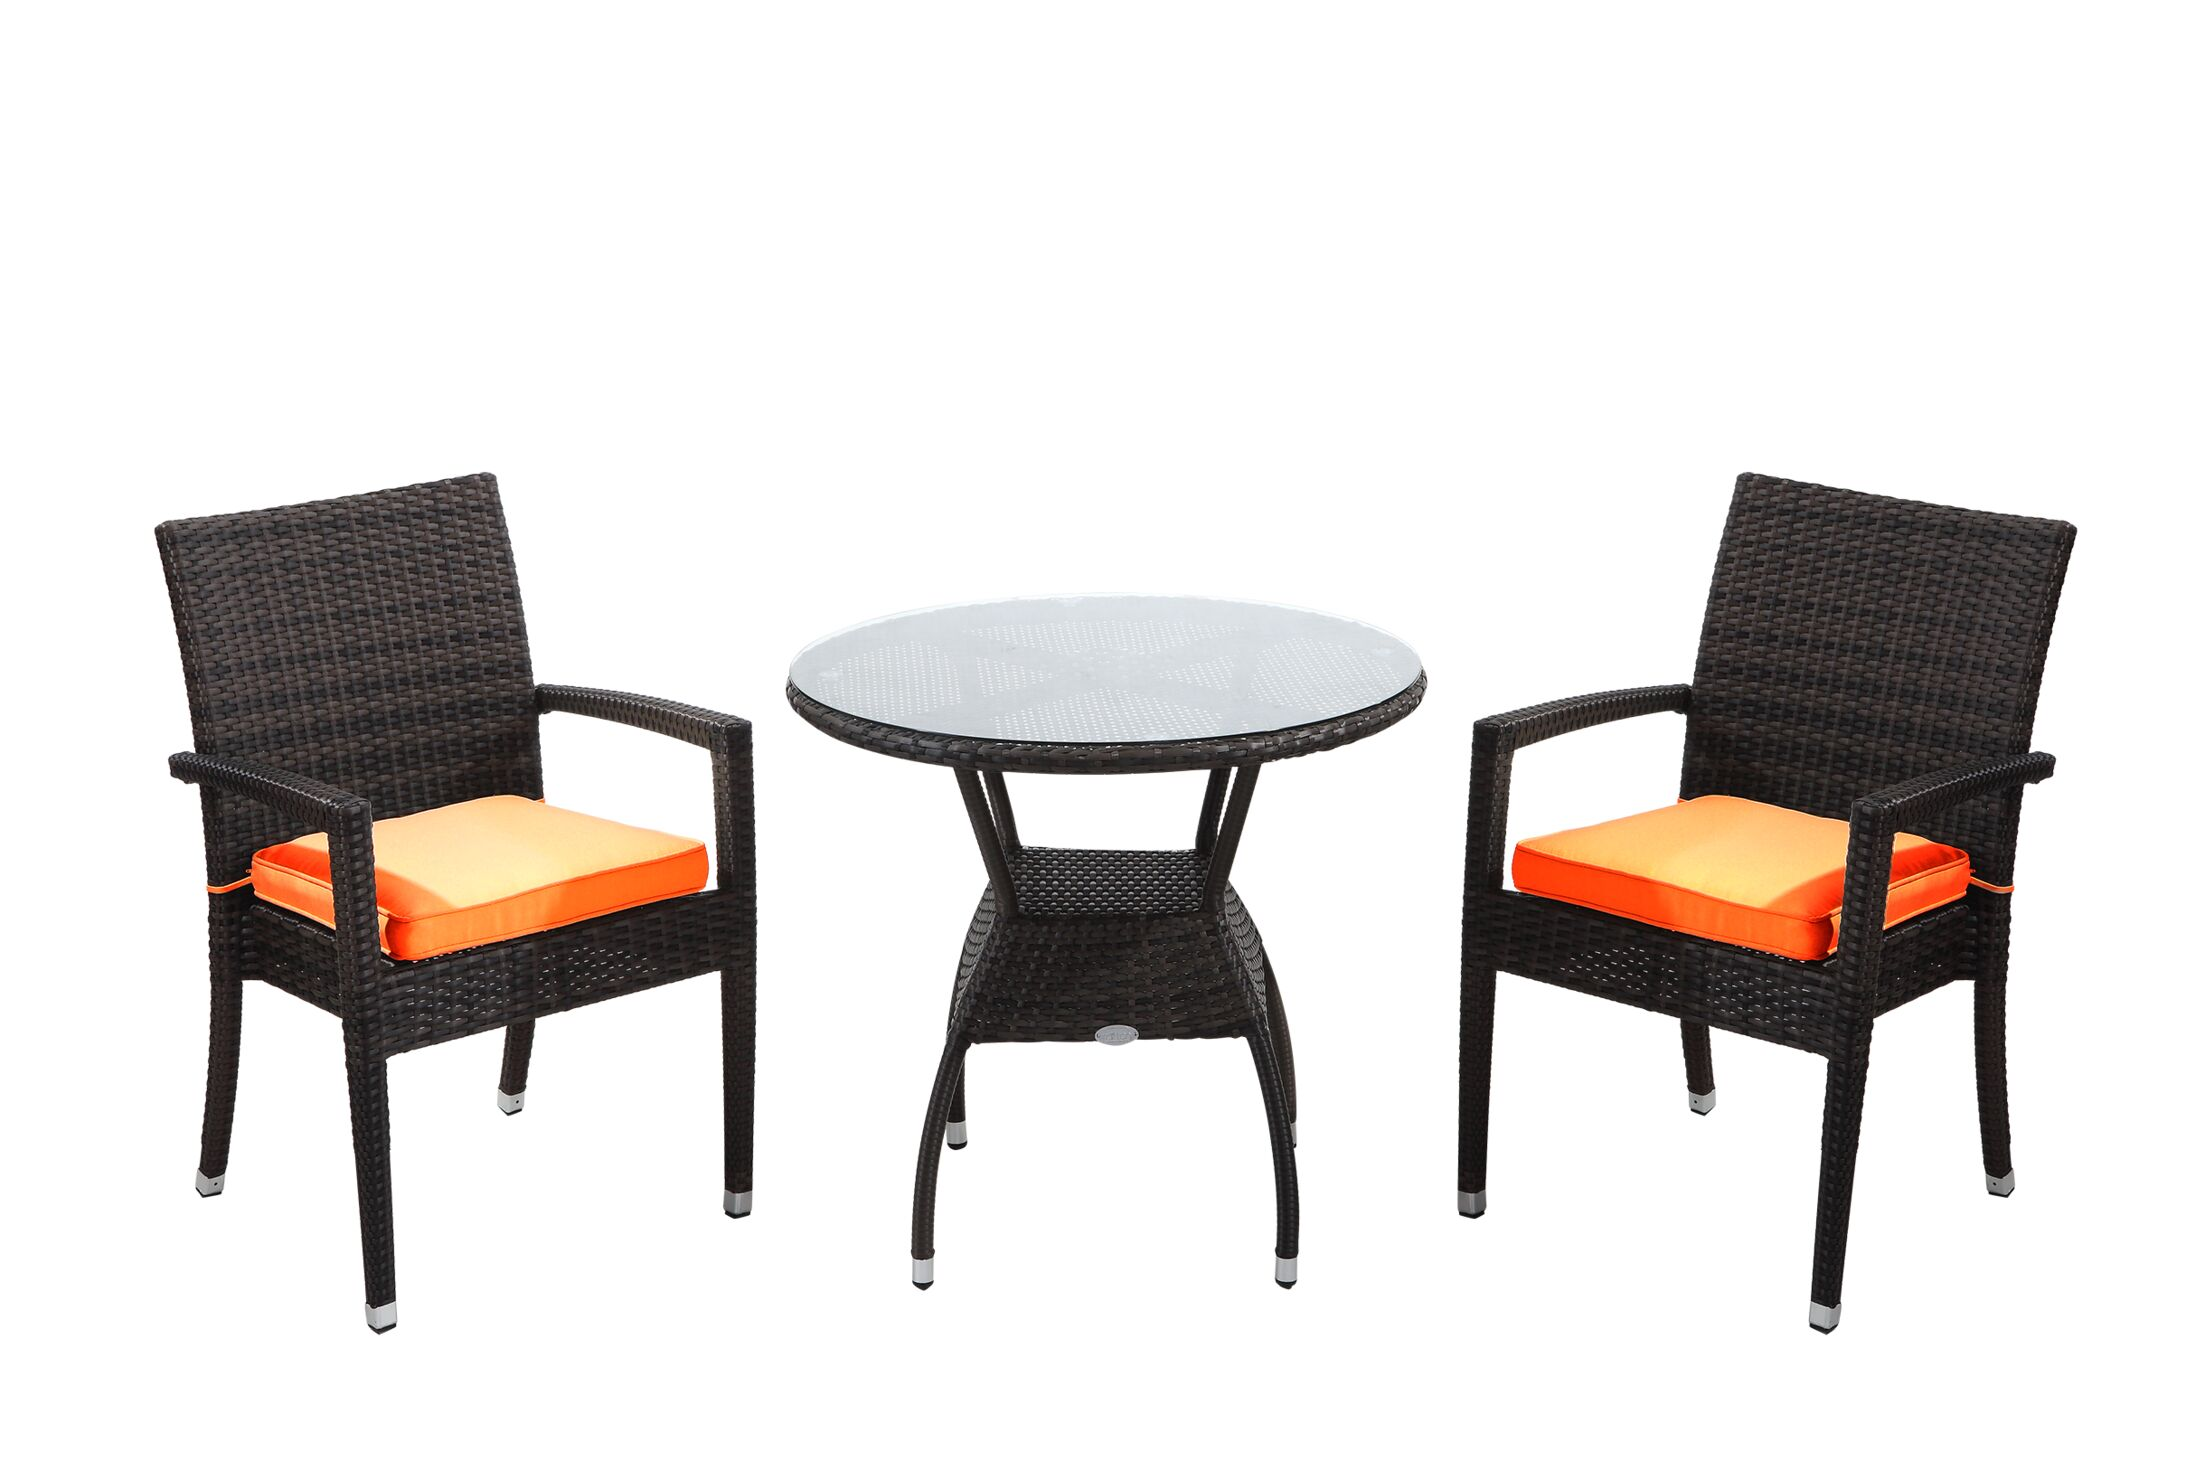 Brighton 3 Piece Dining Set with Cushions Cushion Color: Orange, Finish: Java Brown